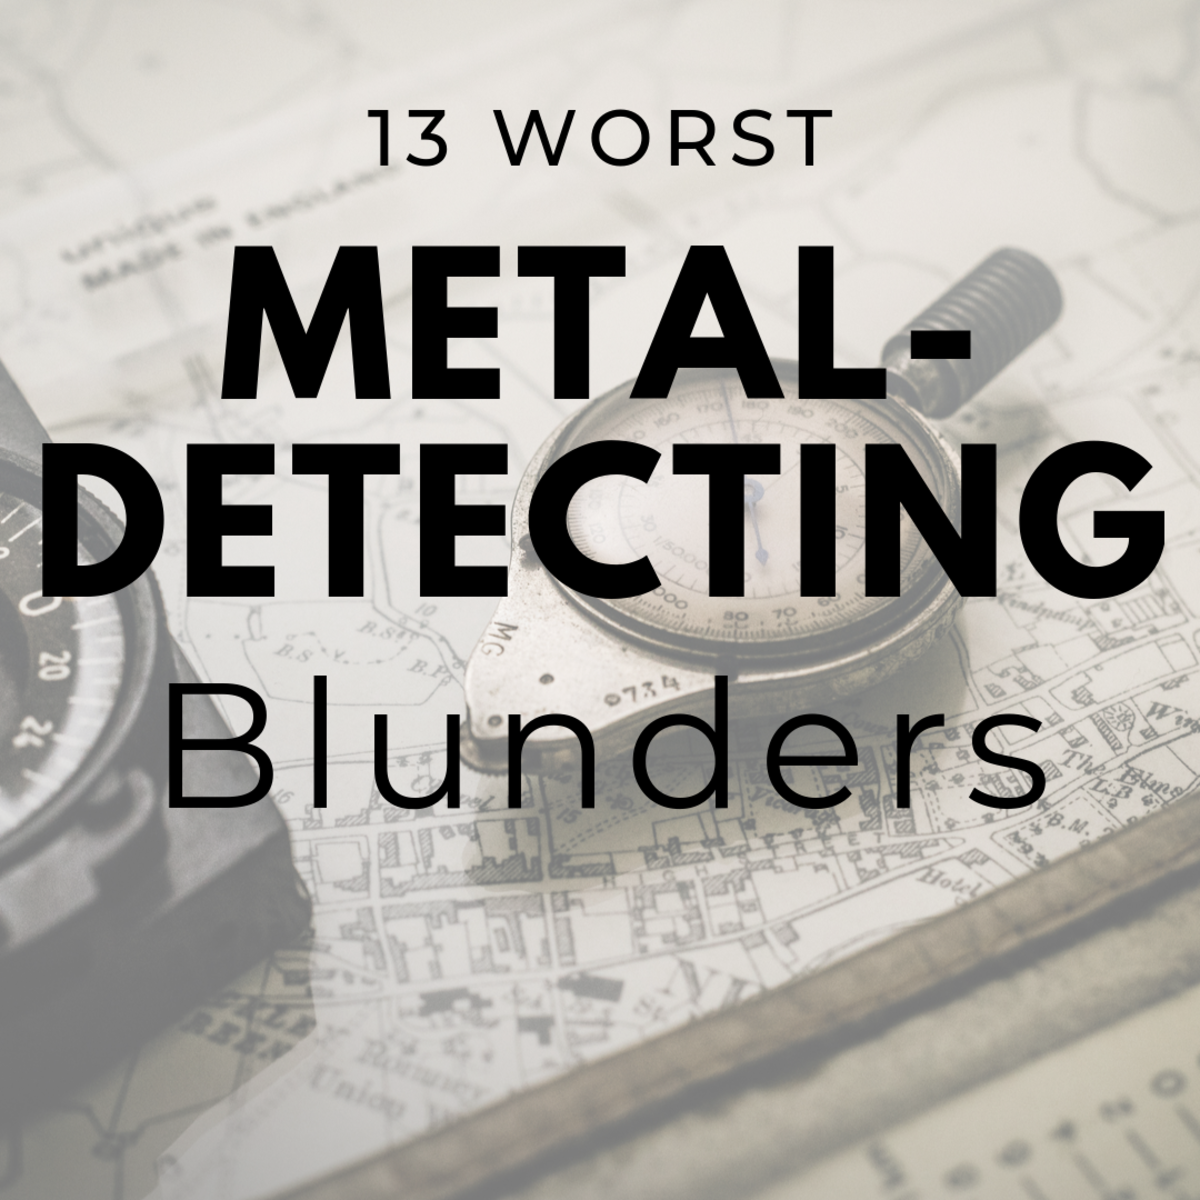 The 13 Worst Metal-Detecting Blunders